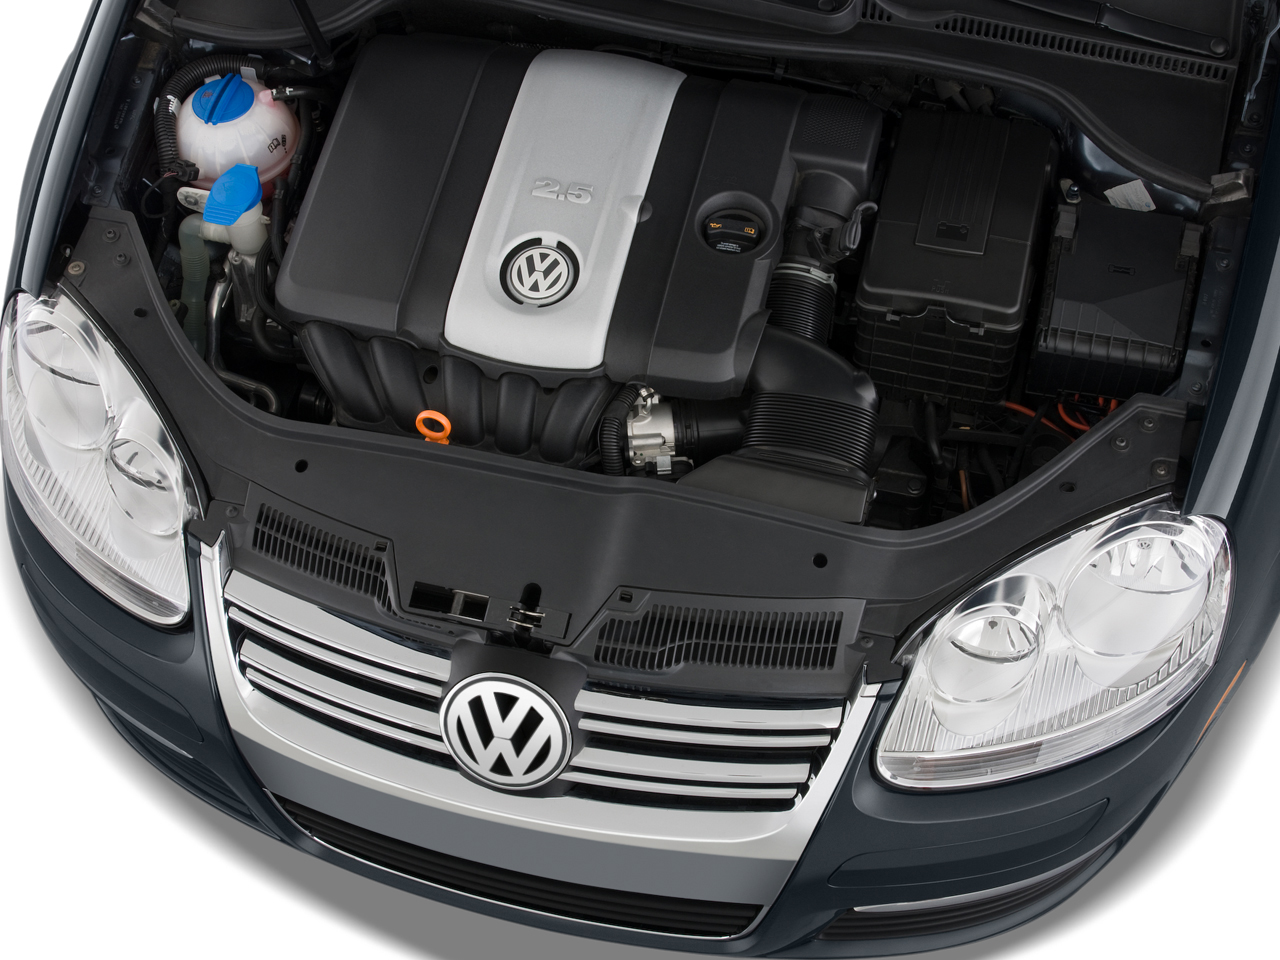 2009 Volkswagen Jetta Sportwagen Midsize Wagon Review Kia Rio Sedan Engine Diagram 41 100